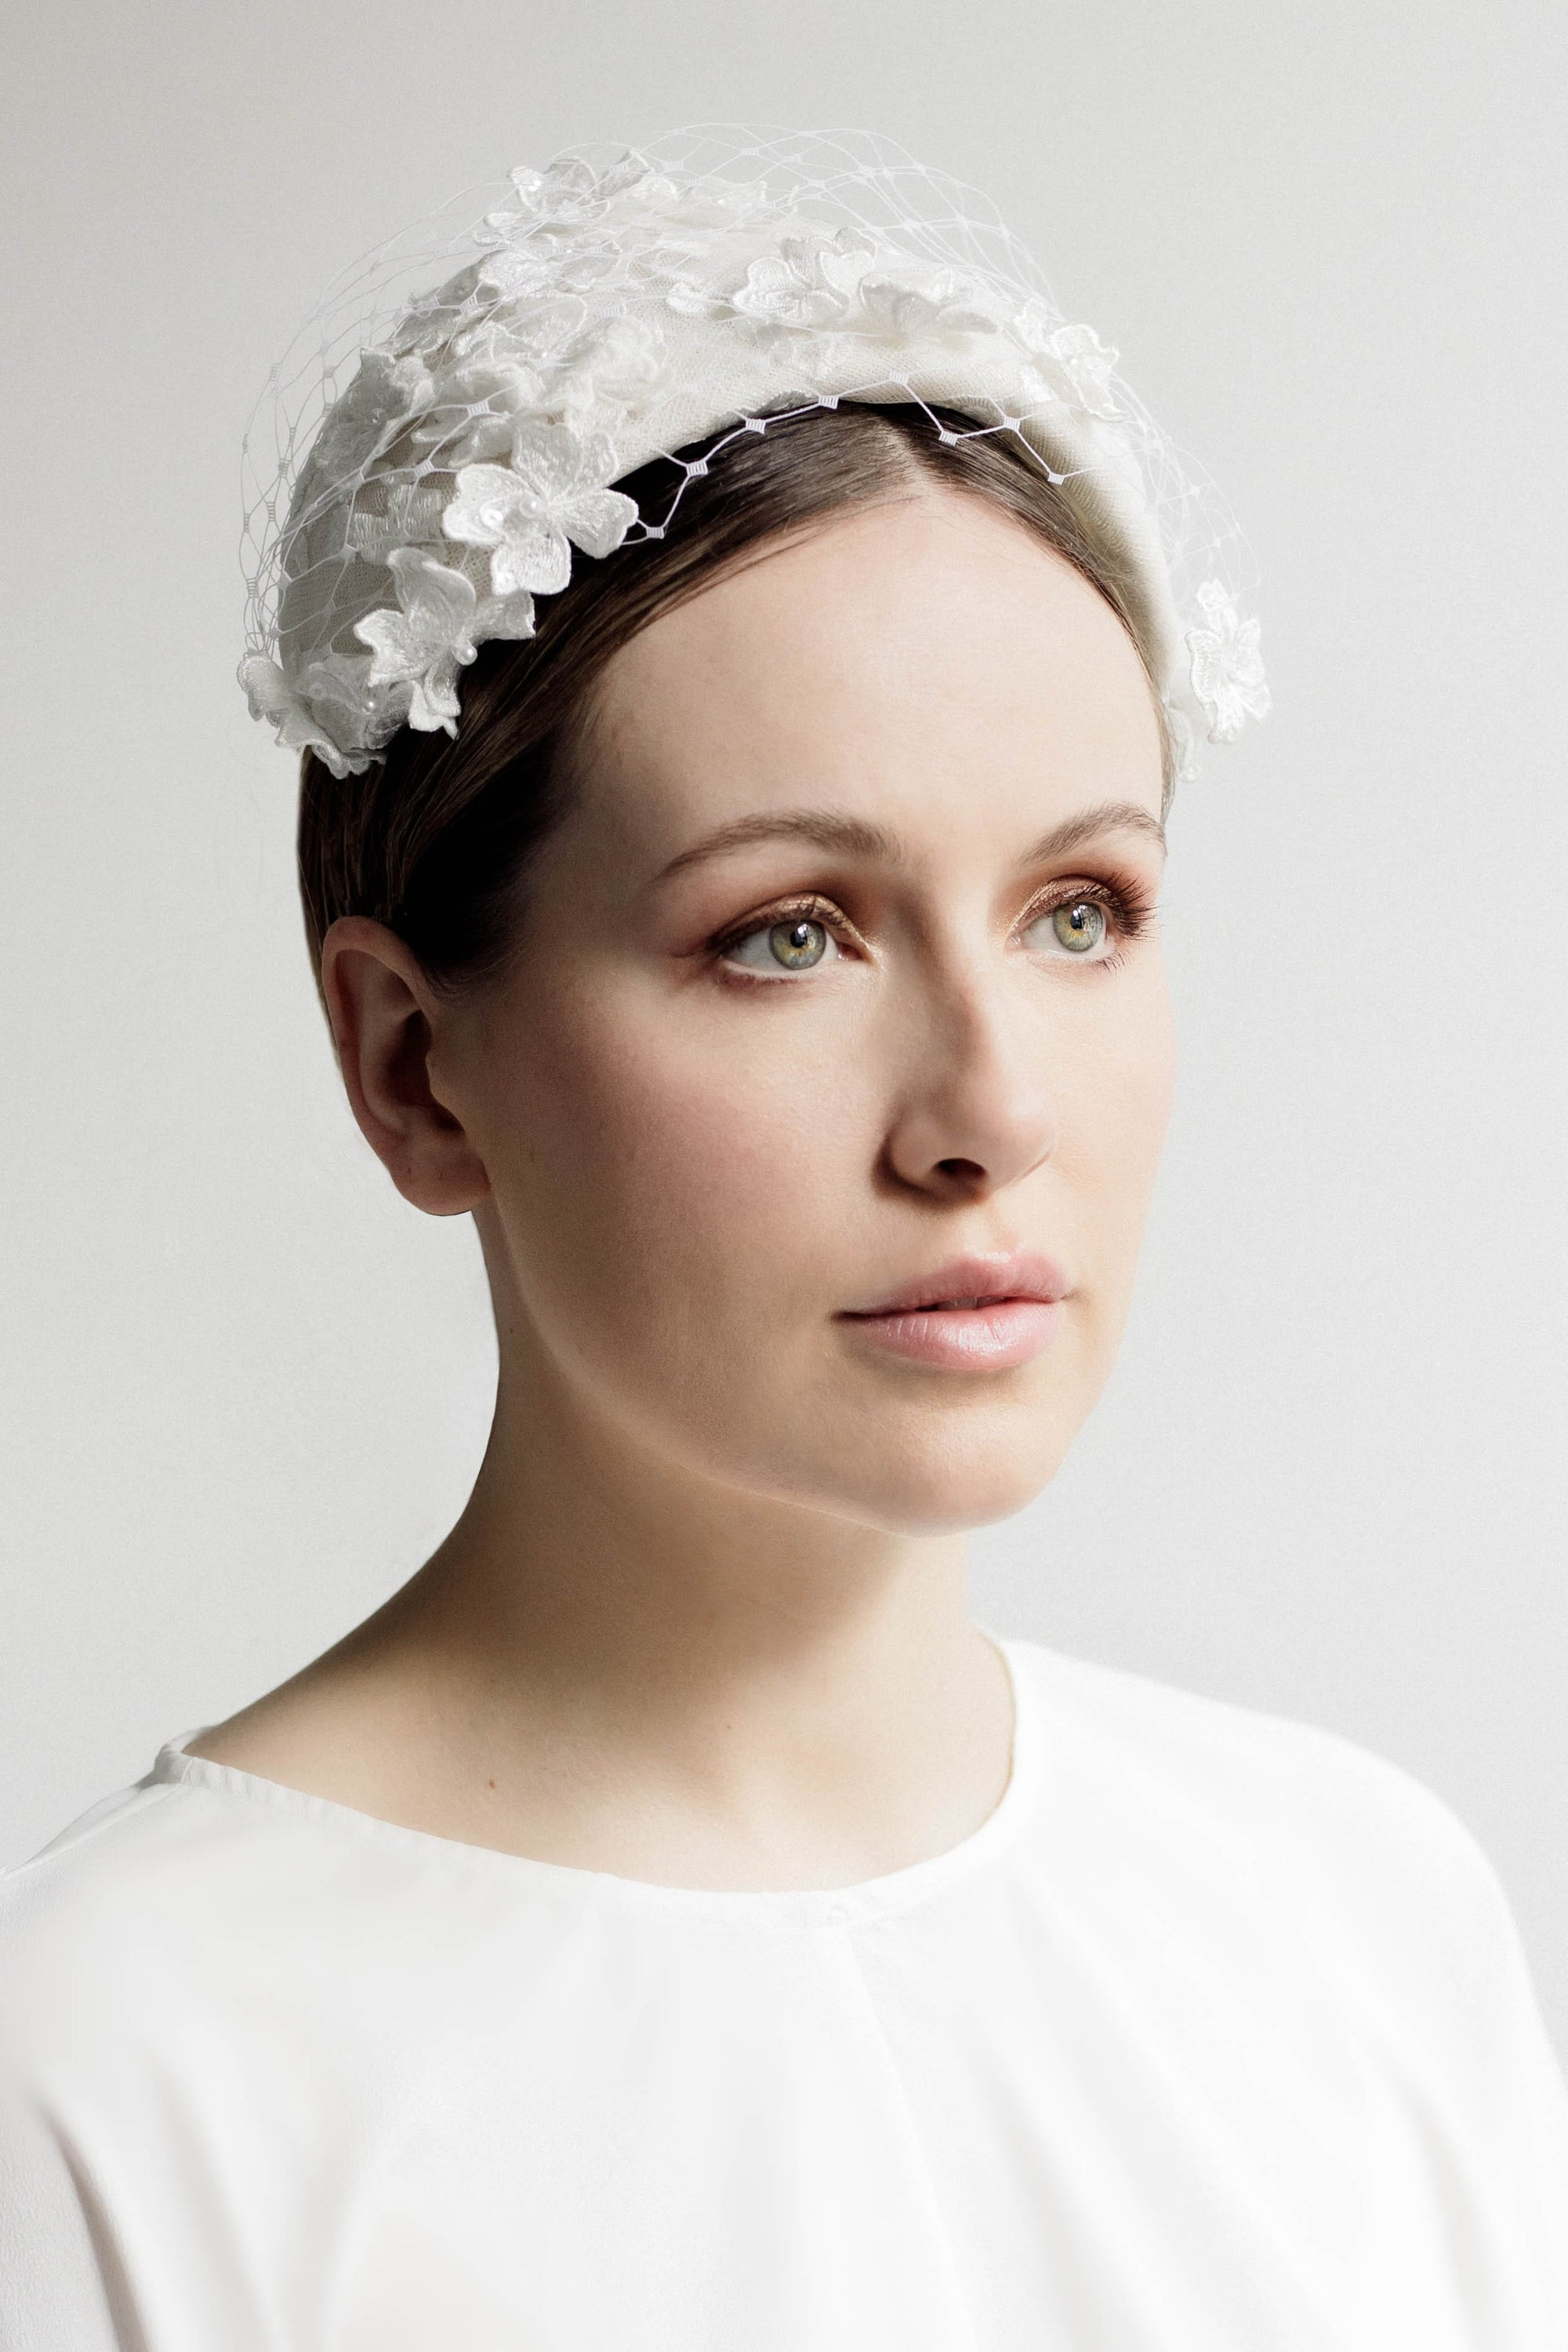 Our Ianthia  veil and lace floral headband is a romantic style, which can be worn with so many bridal looks. The headband is made from velour felt and the flowers are a beautiful lace, occasionally finished with a small faux pearl.